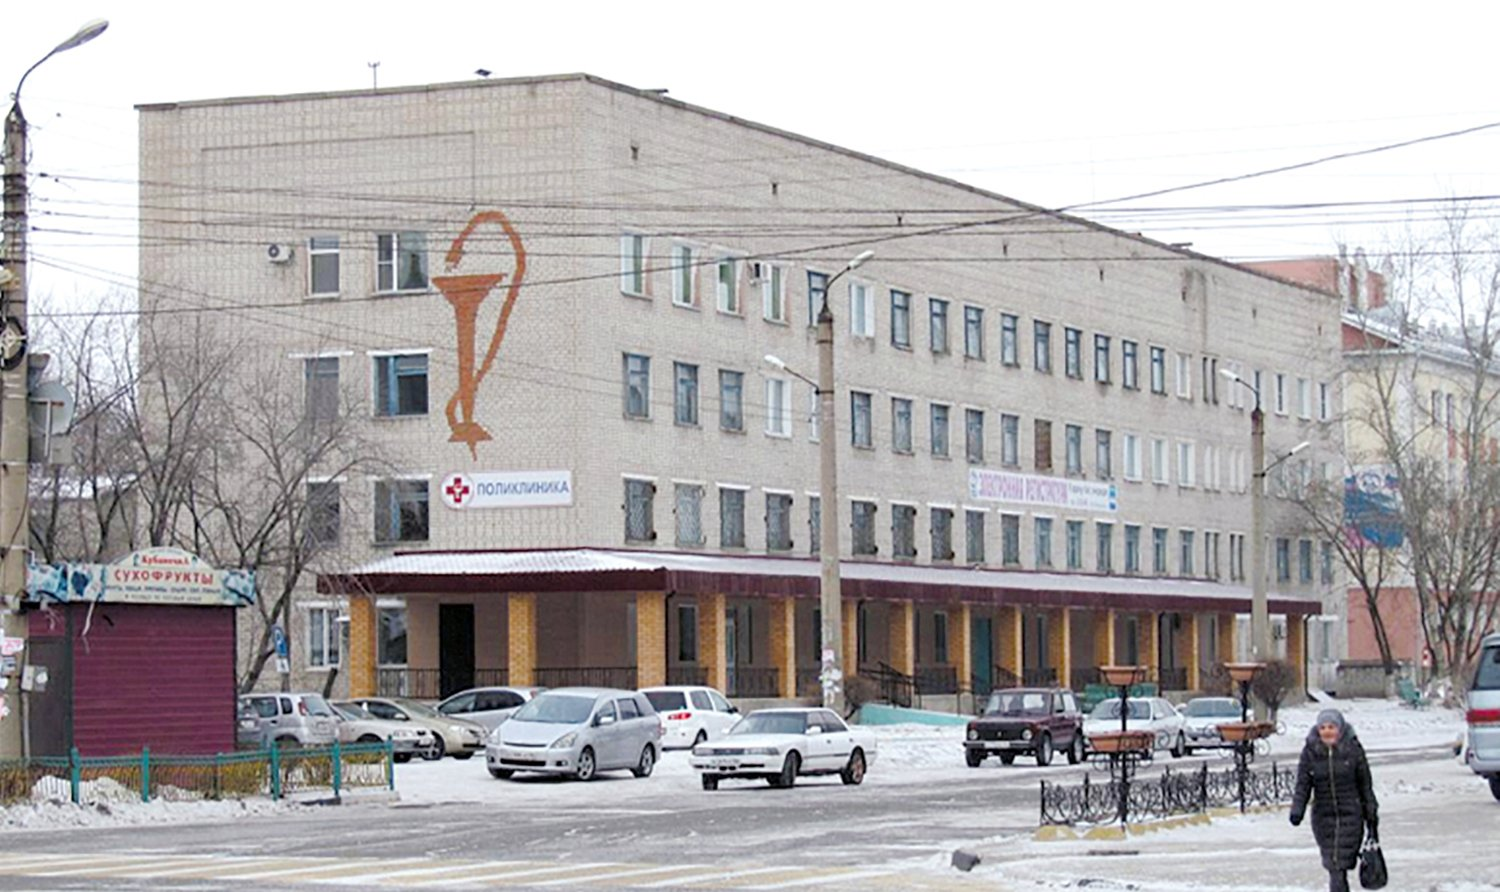 Belogorsk hospital, Vasilyevka village Amur region Far East of Russia